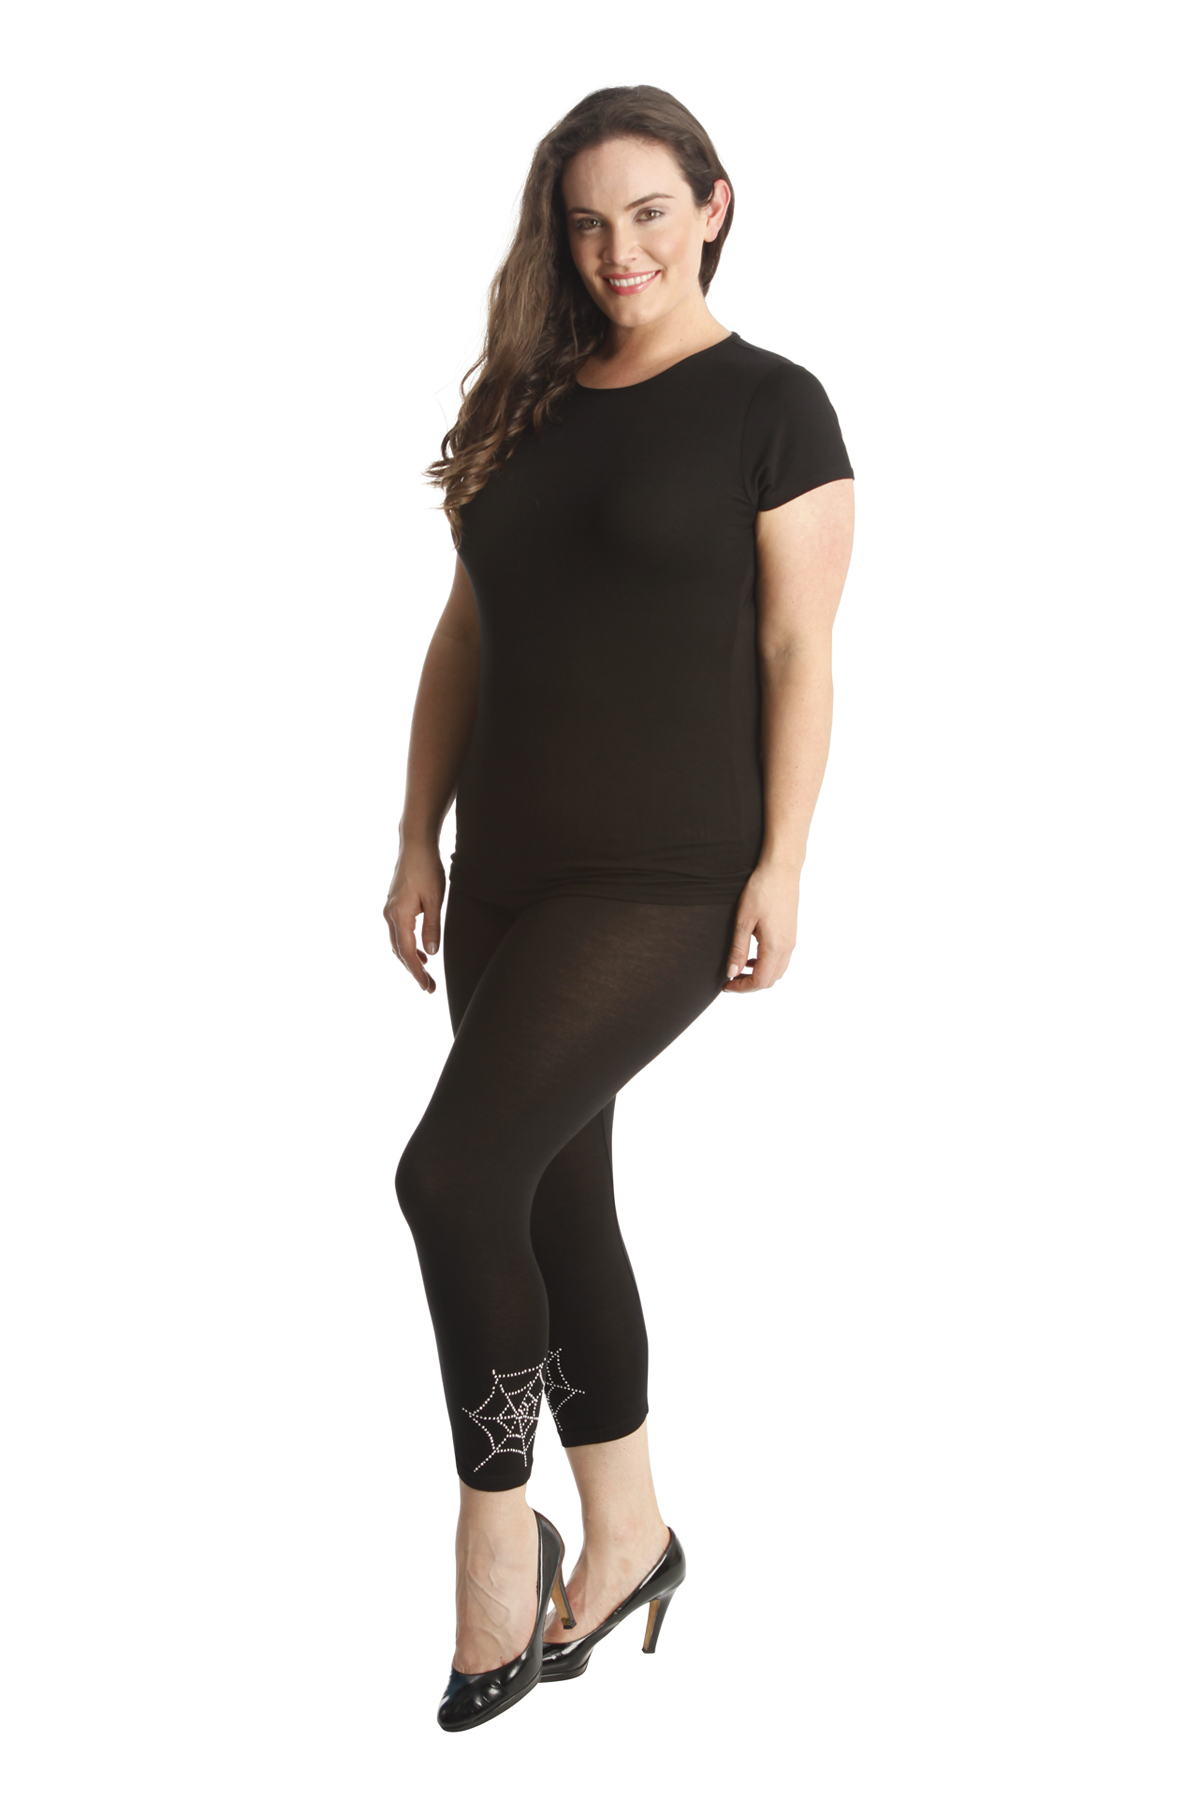 Find plus size clothing for women at HSN. From dresses to jeans, we have trendy plus size clothing that you will surely love. Shop plus size on dvlnpxiuf.ga